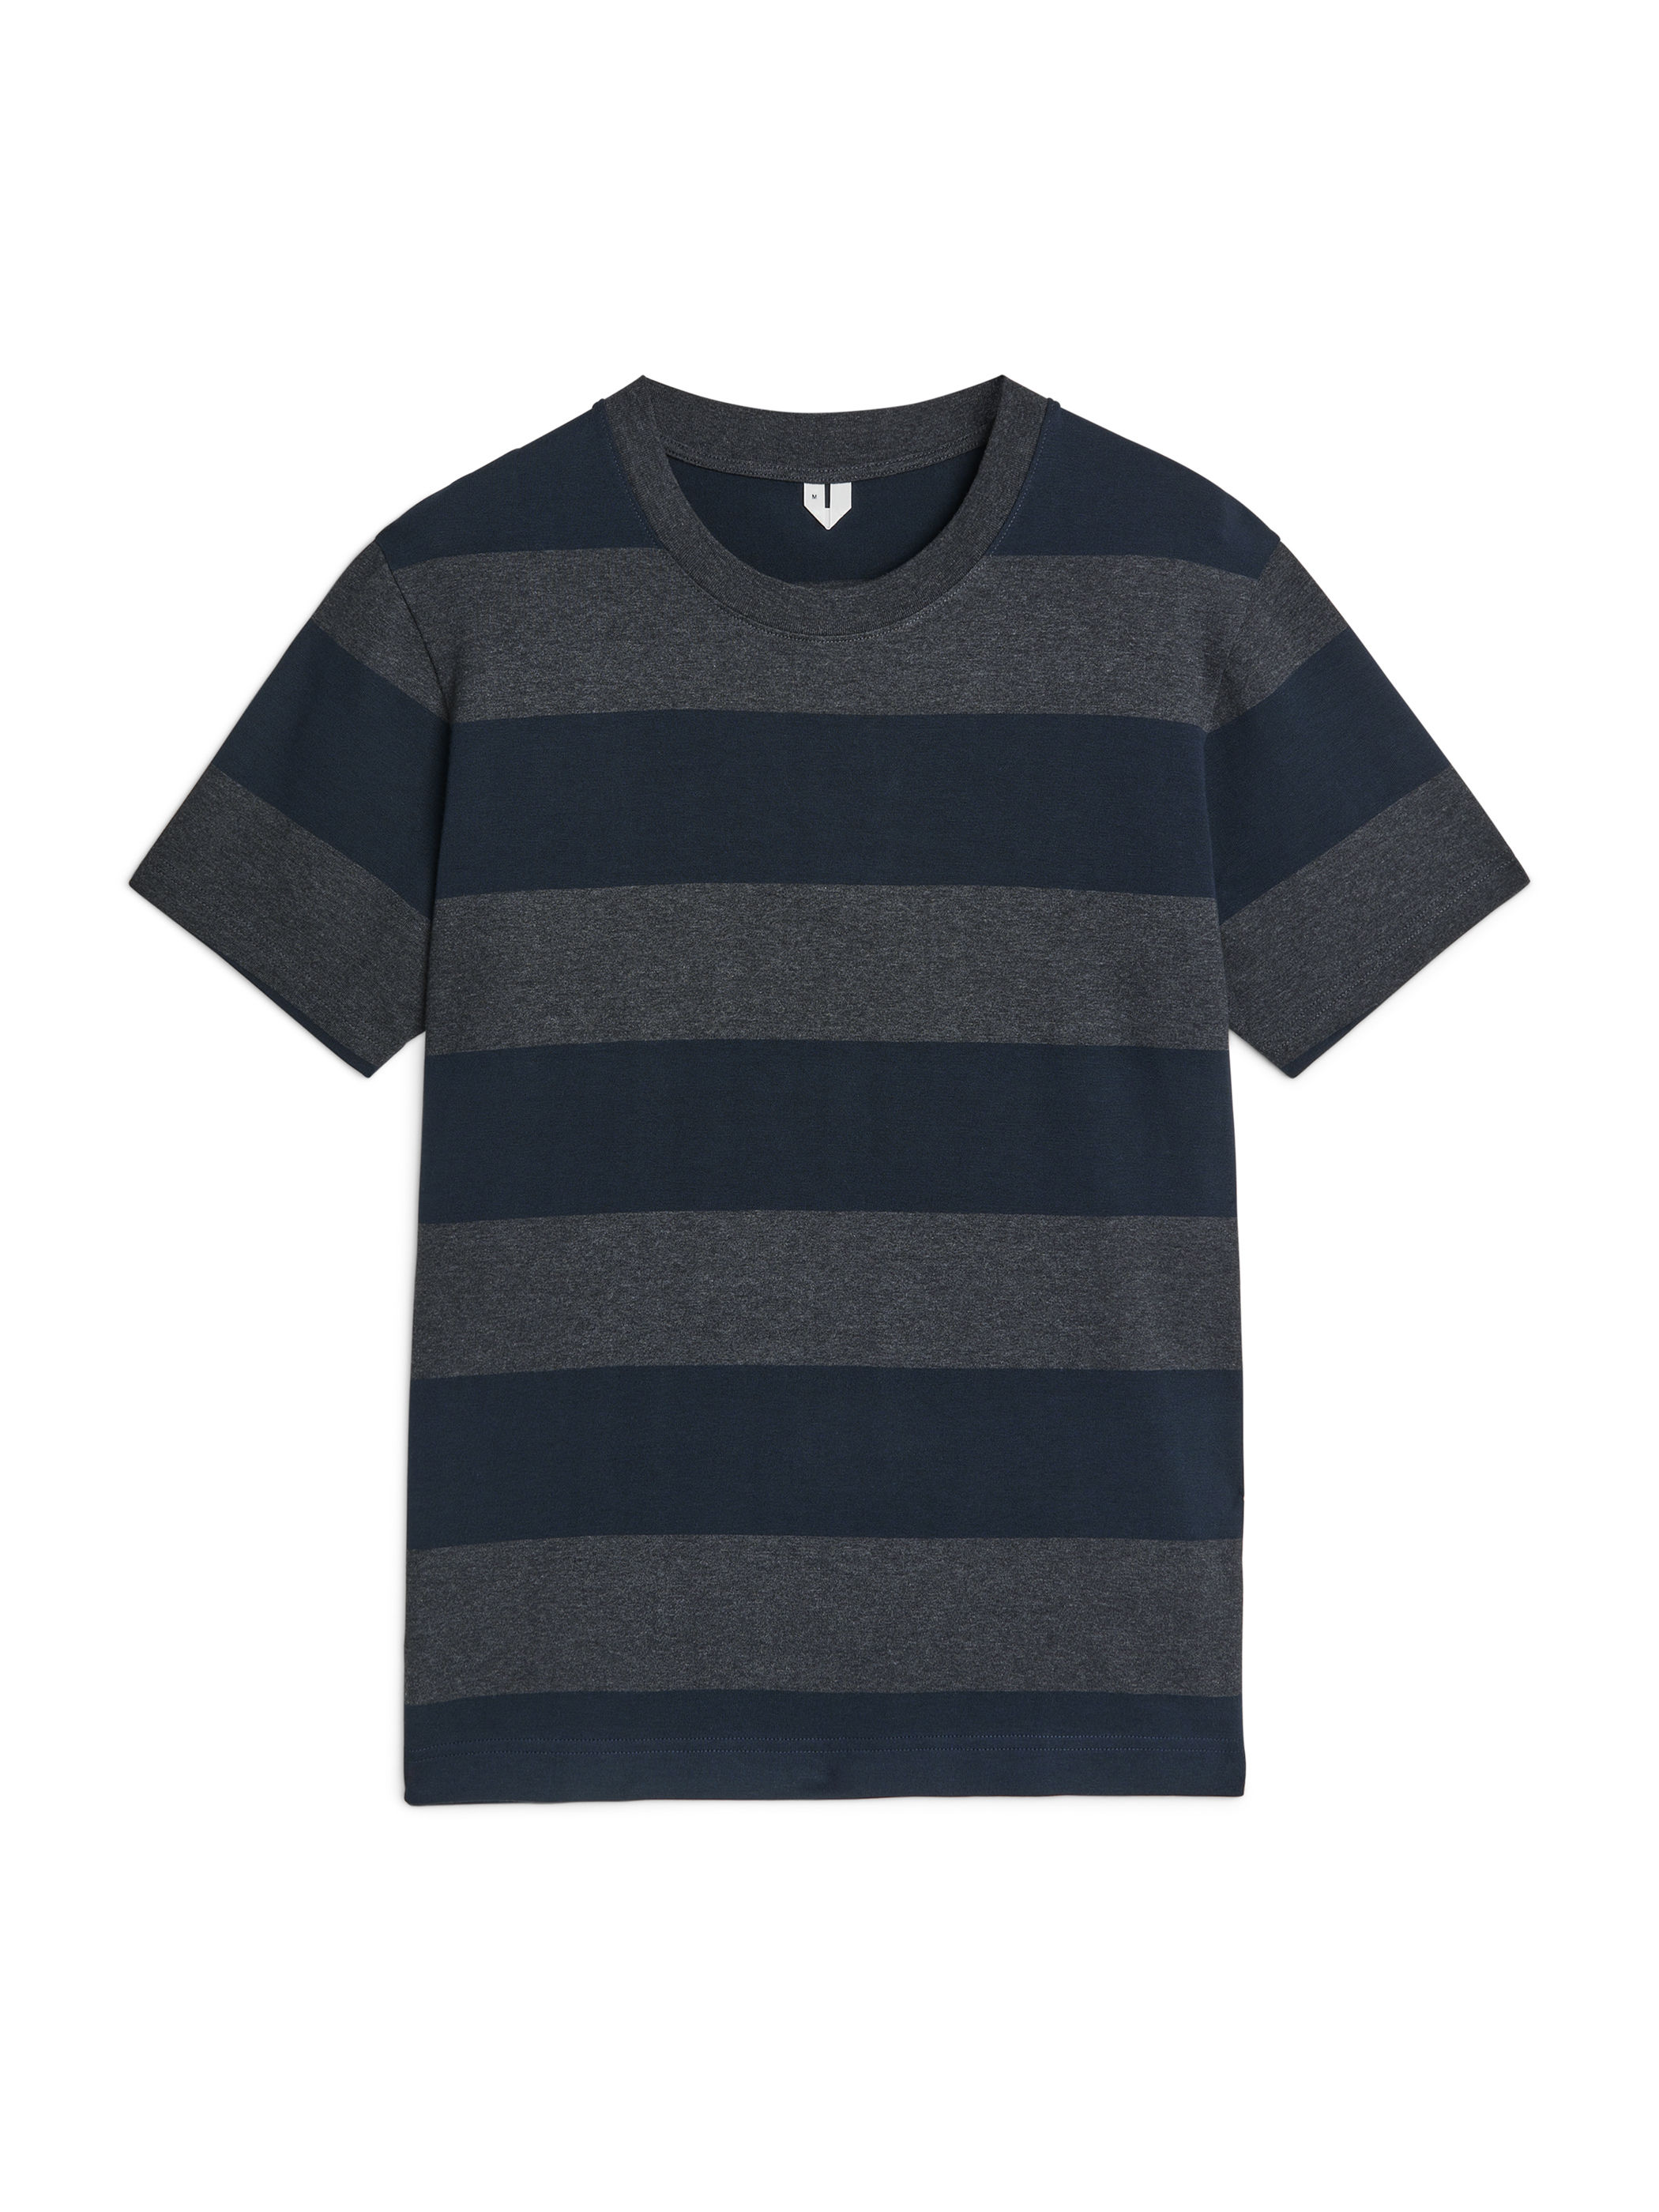 Fabric Swatch image of Arket block stripe cotton t-shirt in blue